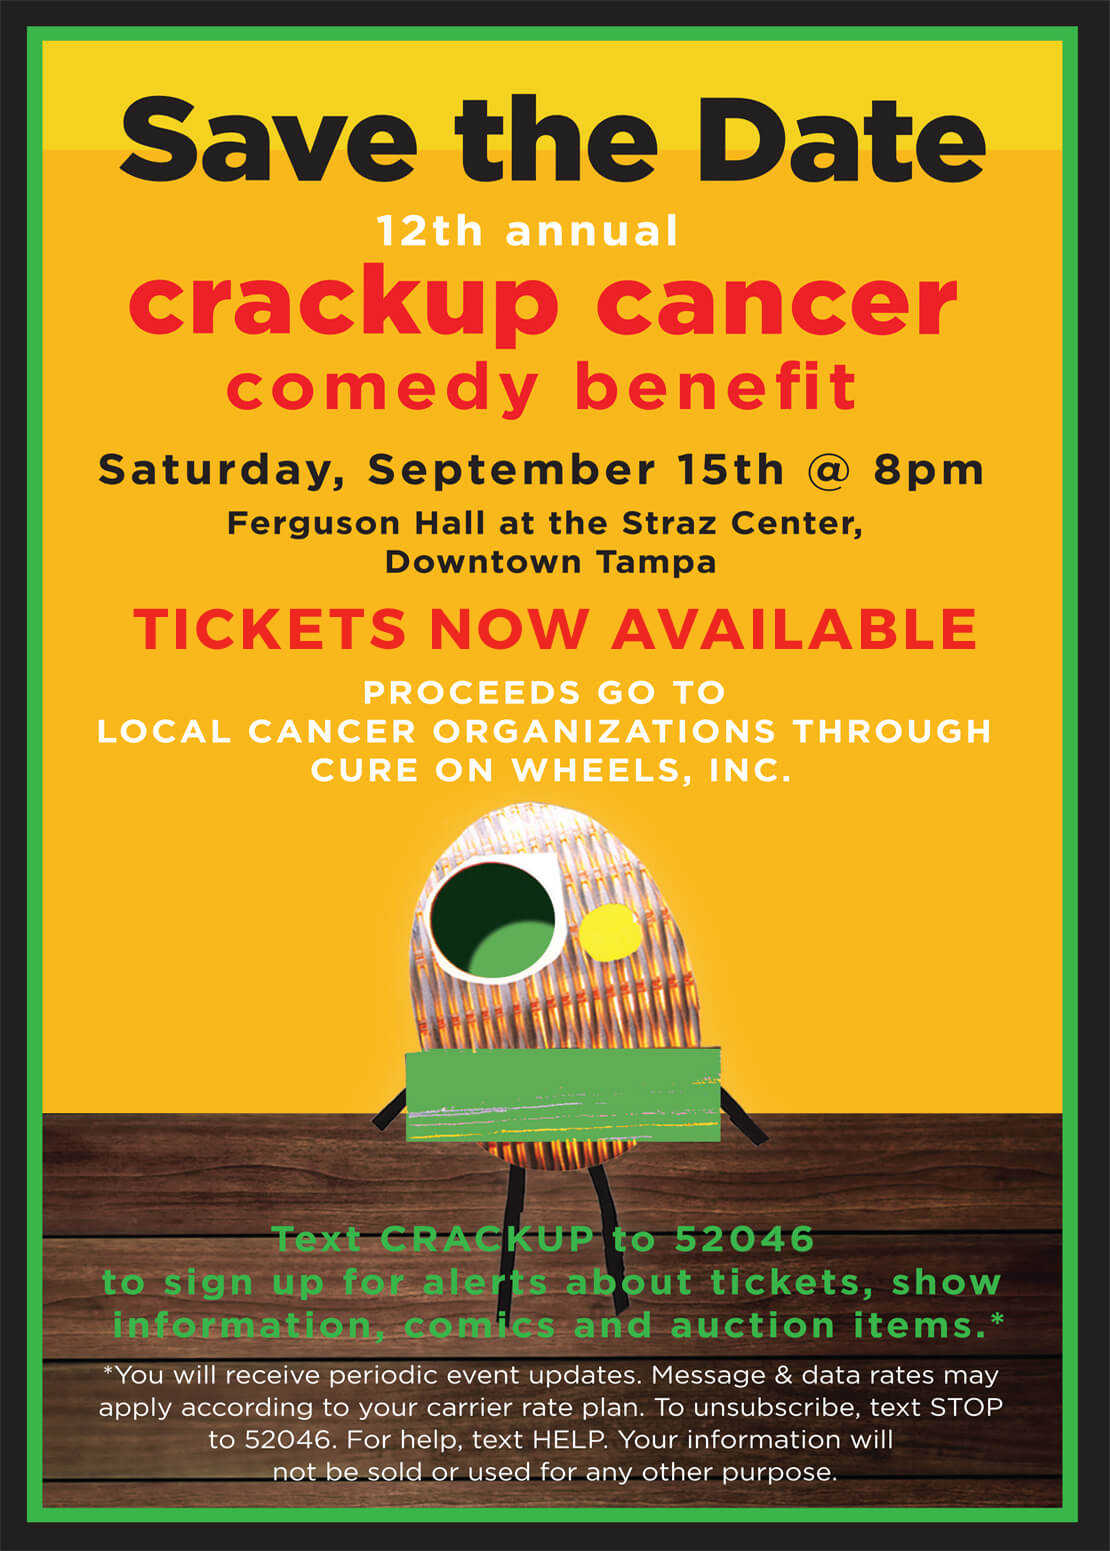 Crack Up Cancer 2018 Tickets Now Available